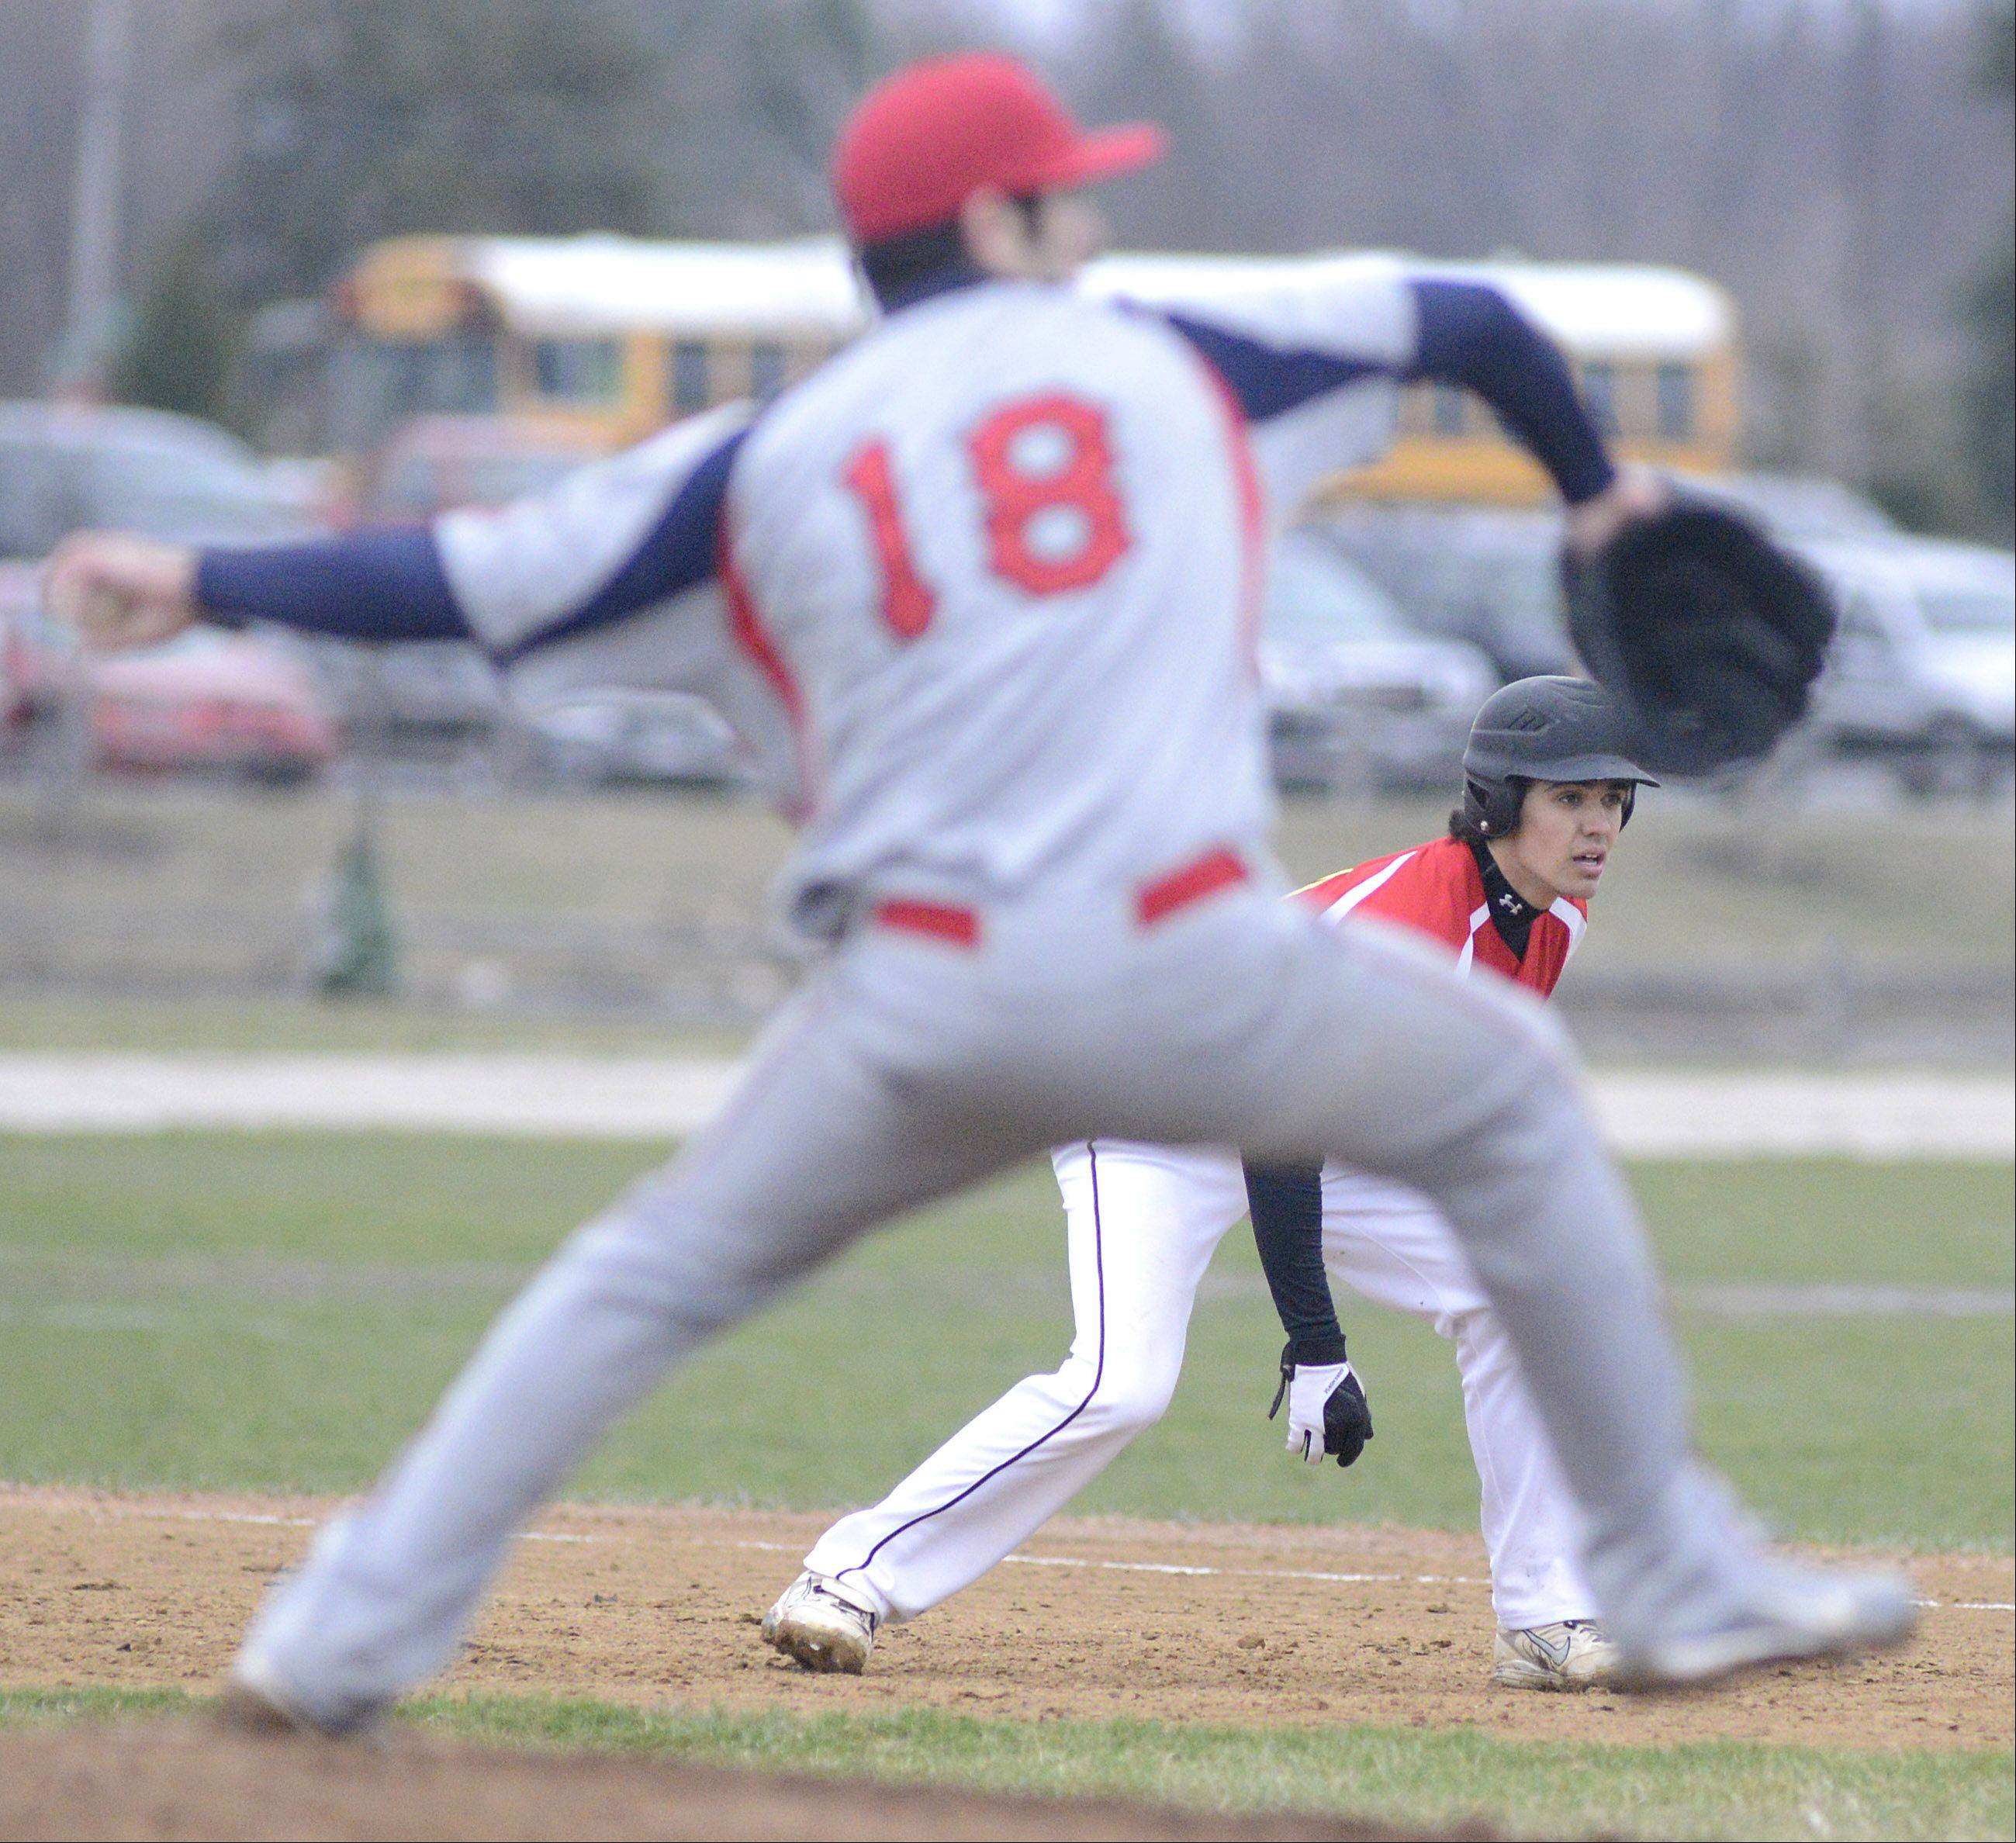 Batavia's Micah Coffey keeps his eye on the batter Friday as South Elgin's Joe Crivolio delivers.